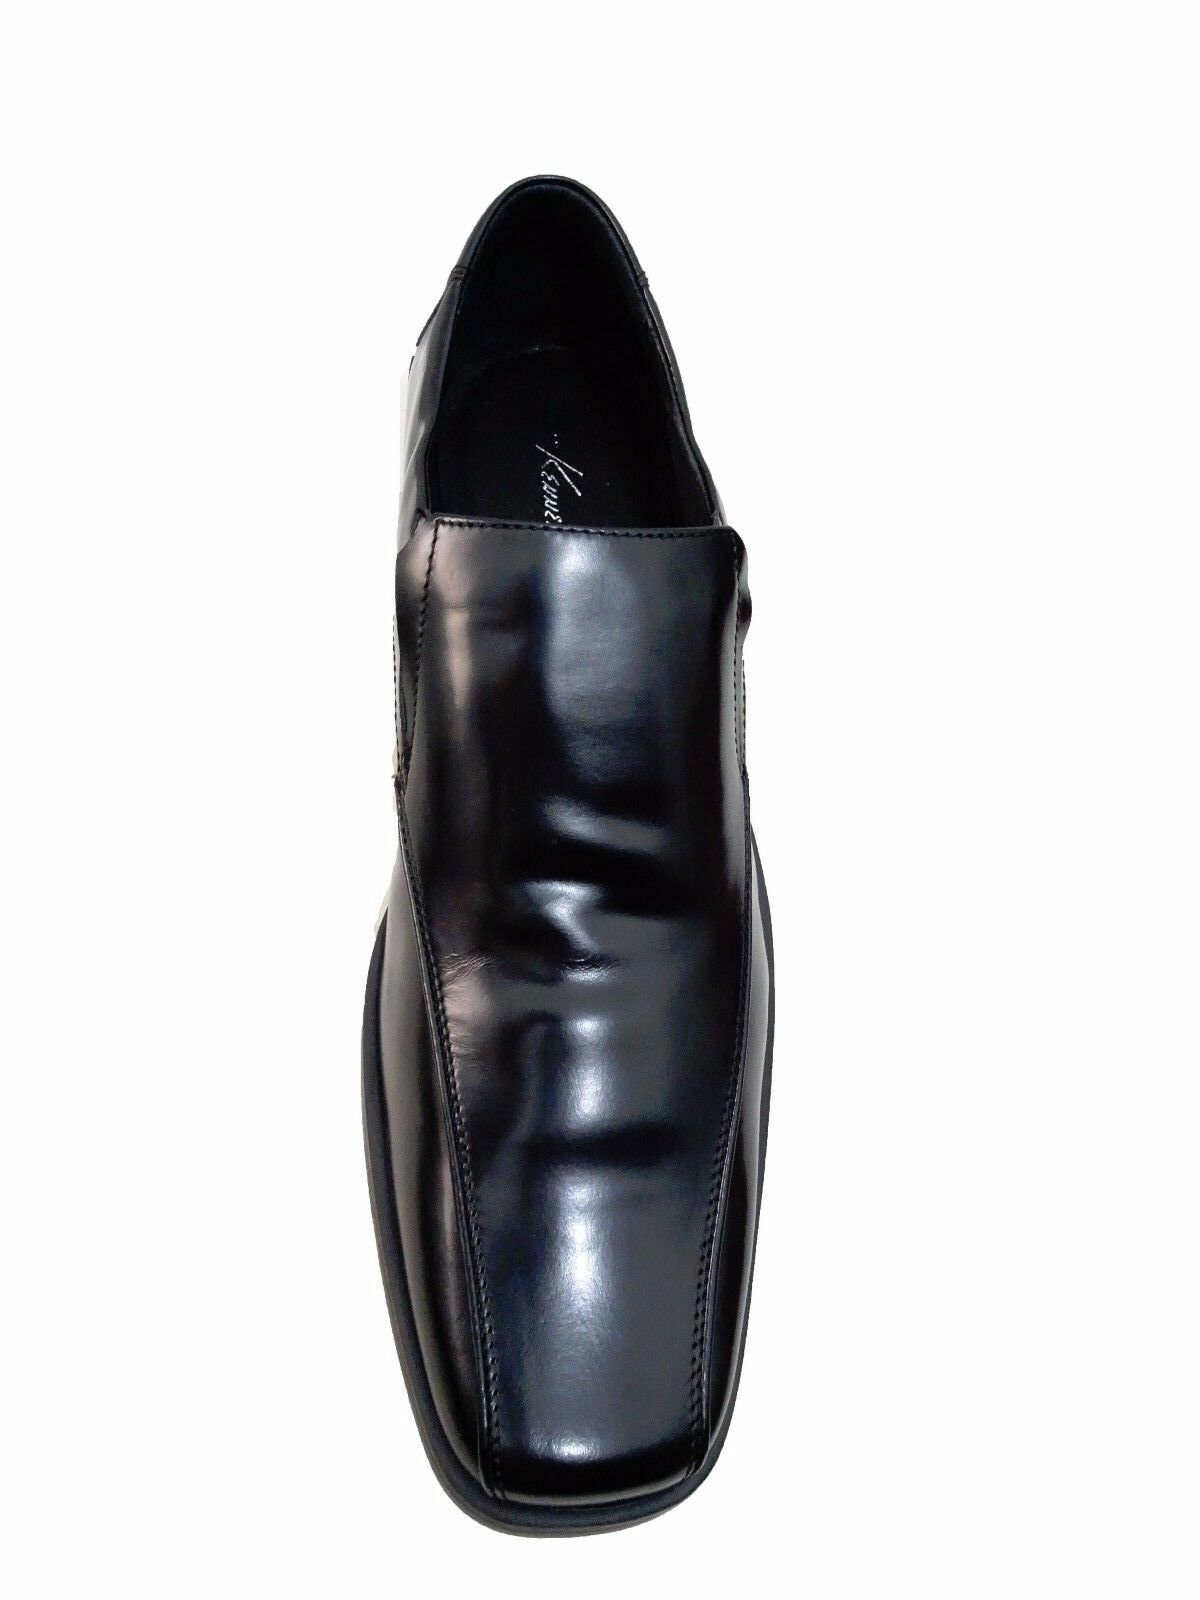 Kenneth Cole New York Mens Mens York Make It Count Business Casual Loafers Dress Shoes b56ade